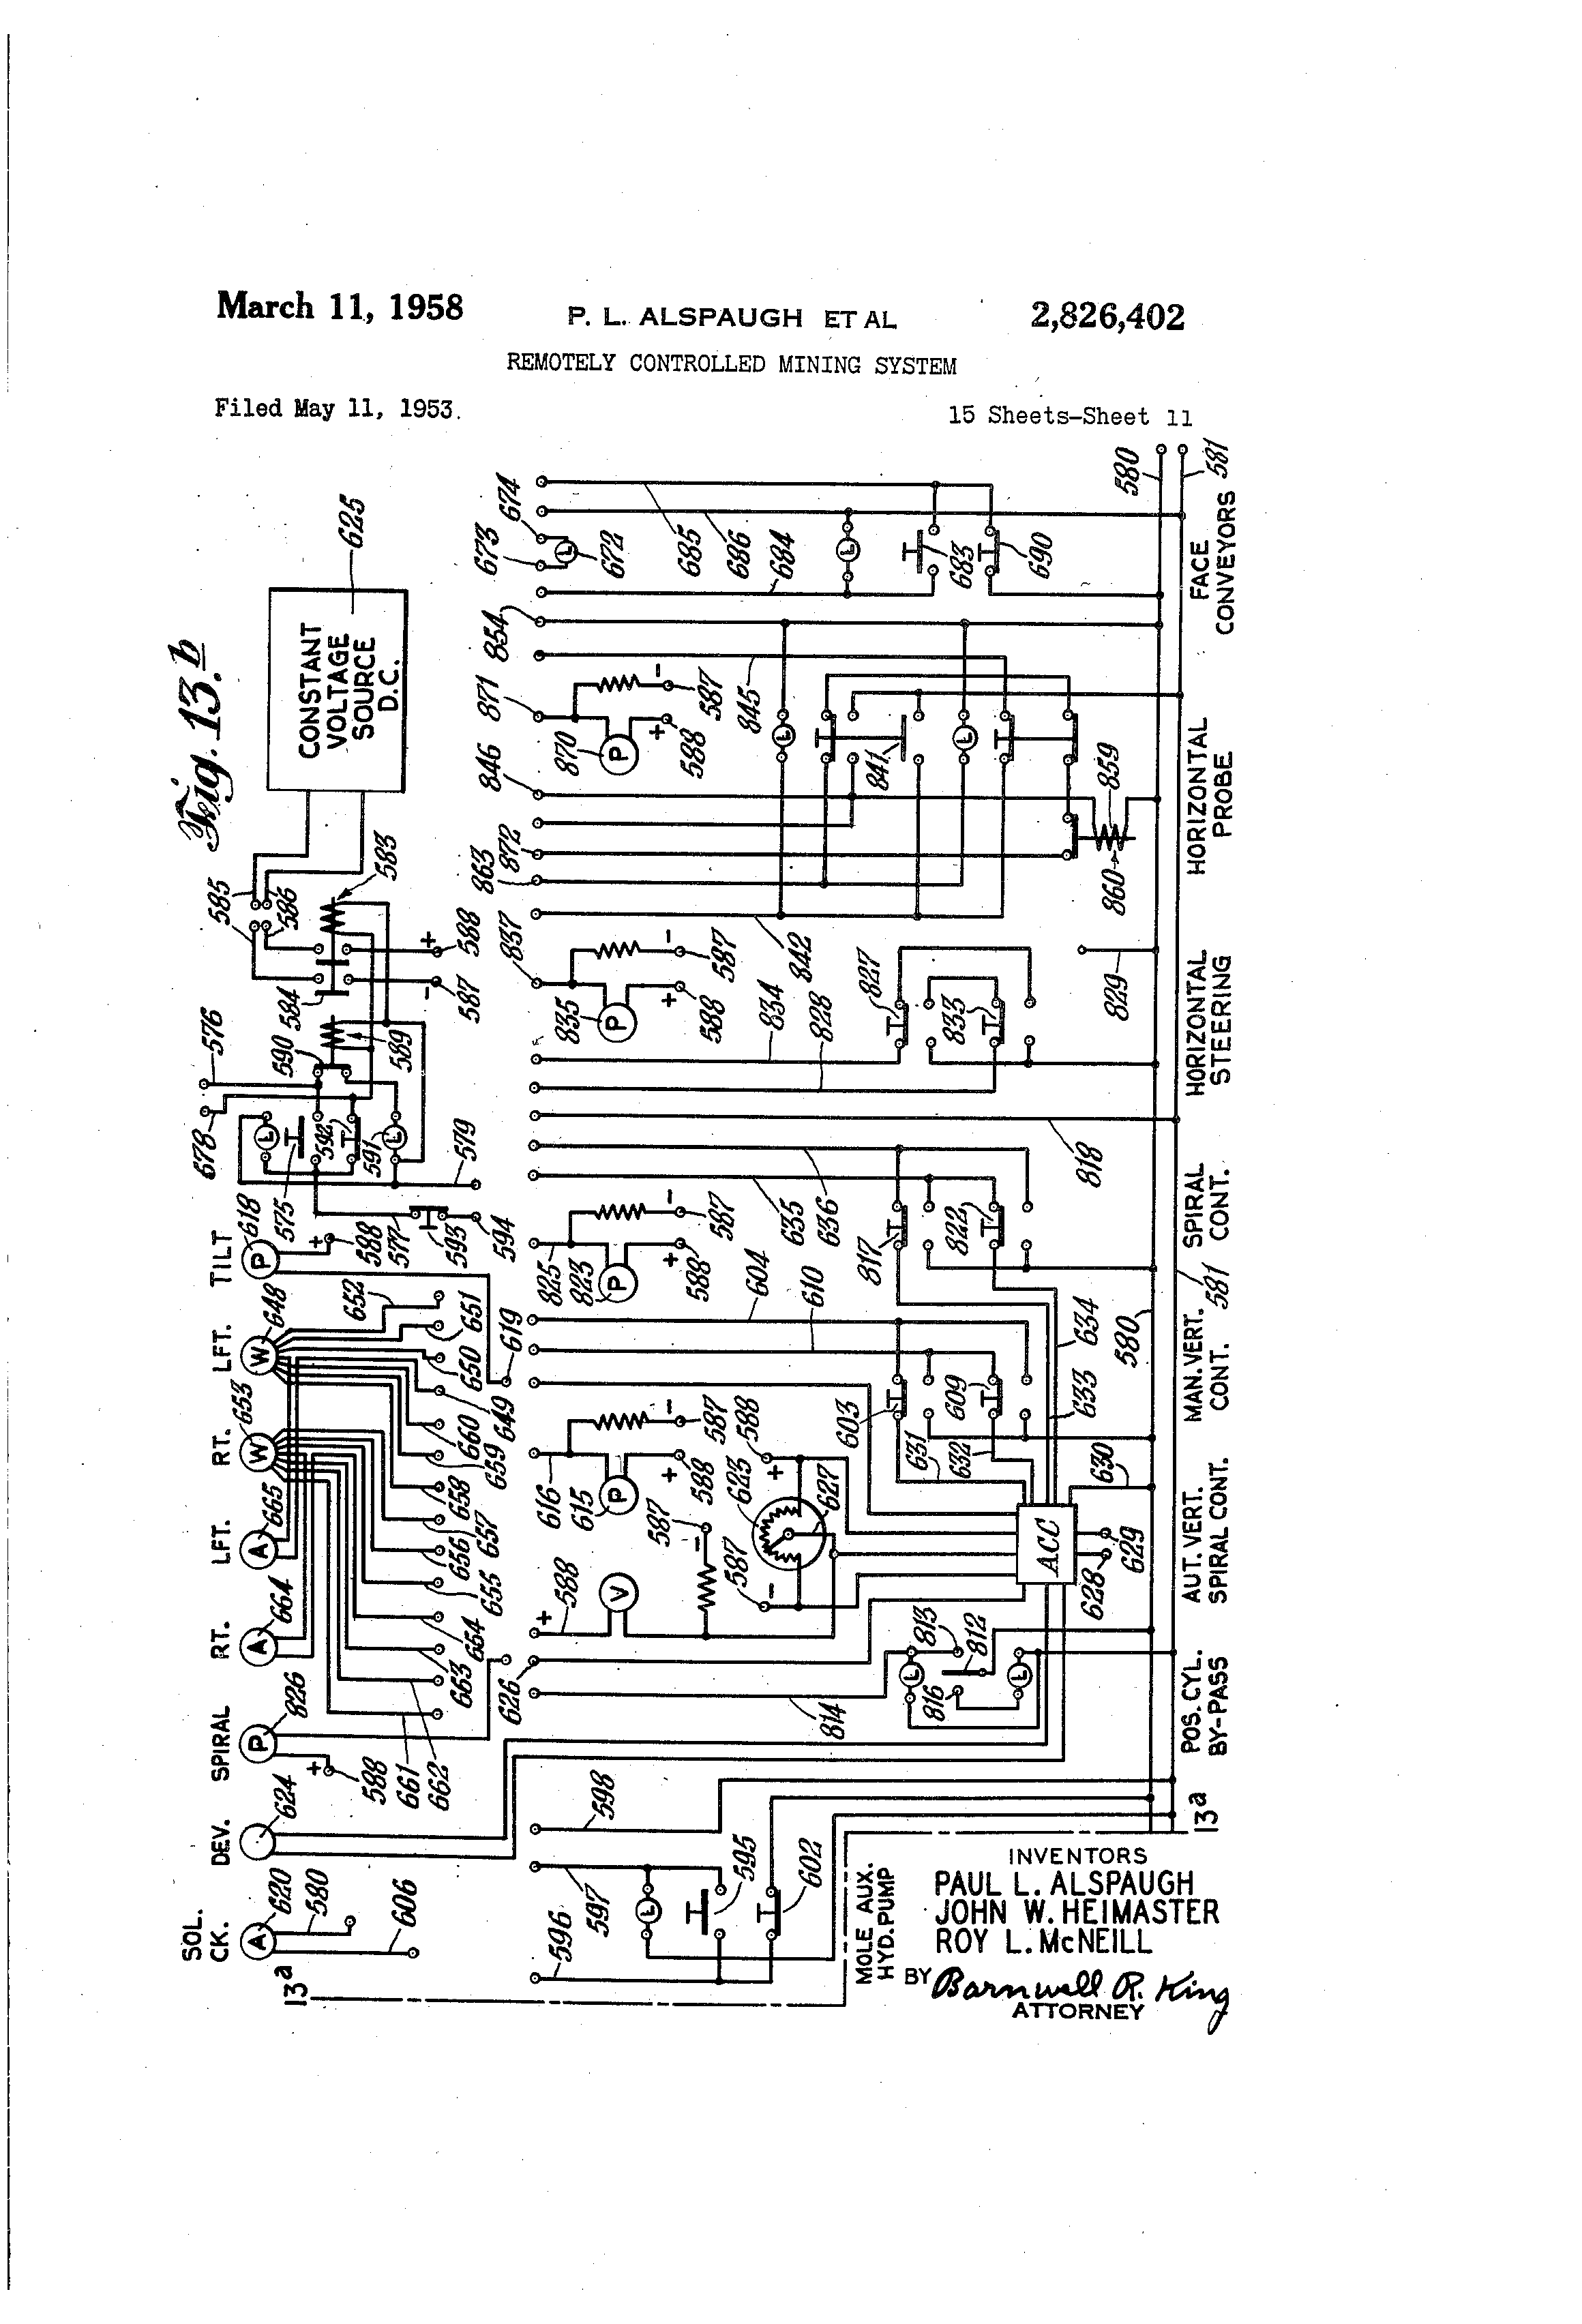 Fuse Box For Case 95xt Custom Wiring Diagram \u2022 Case 95XT Skid Steer  Case 60xt Skid Steer Wiring Diagram